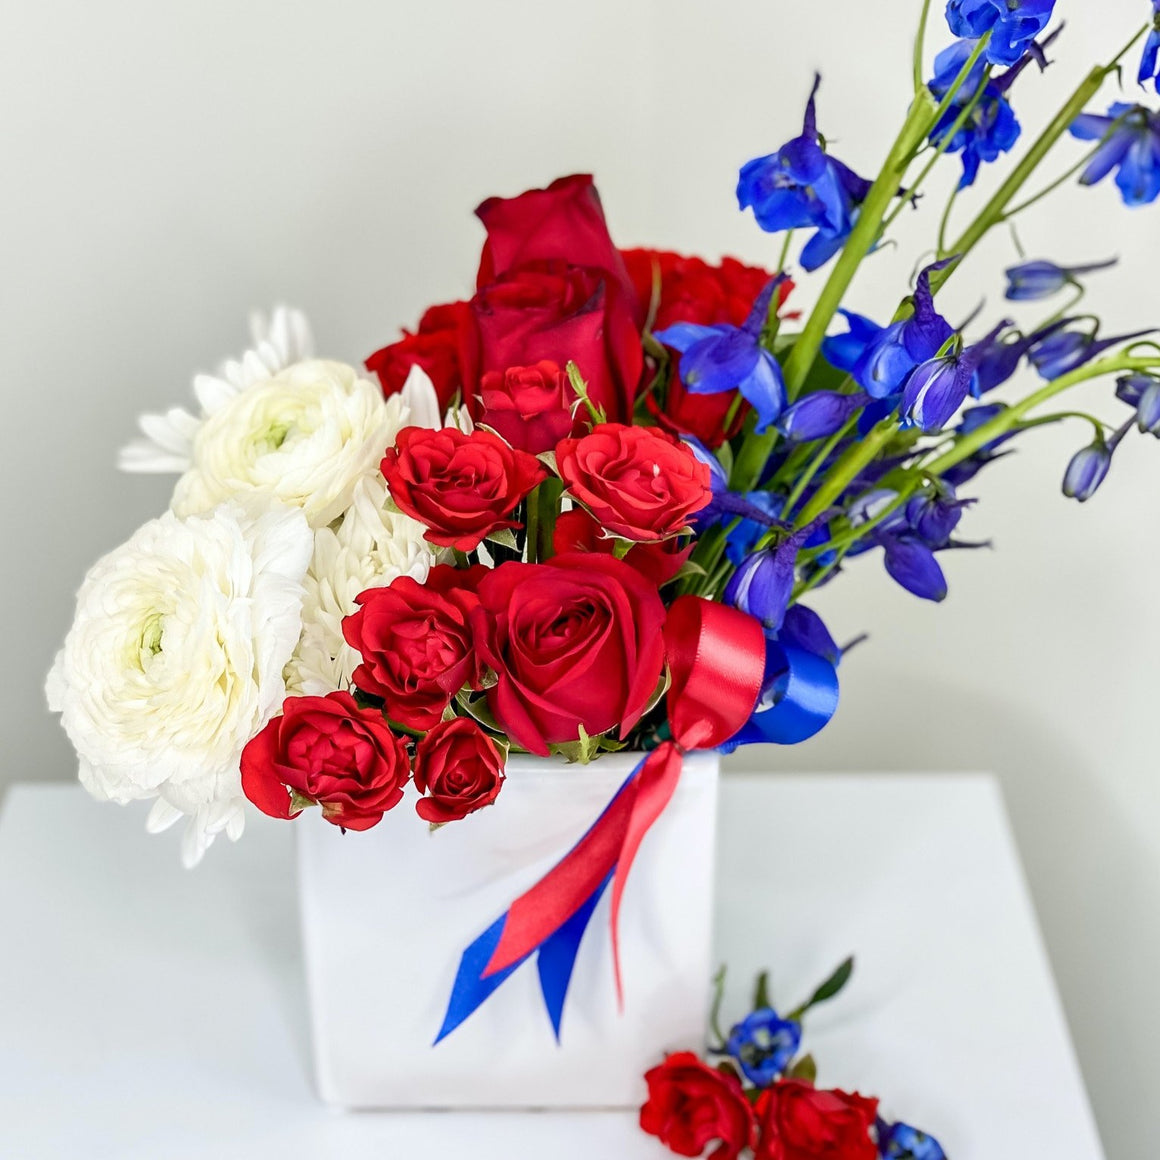 May 22, 2020 Red White & Blue Virtual Flower Workshop